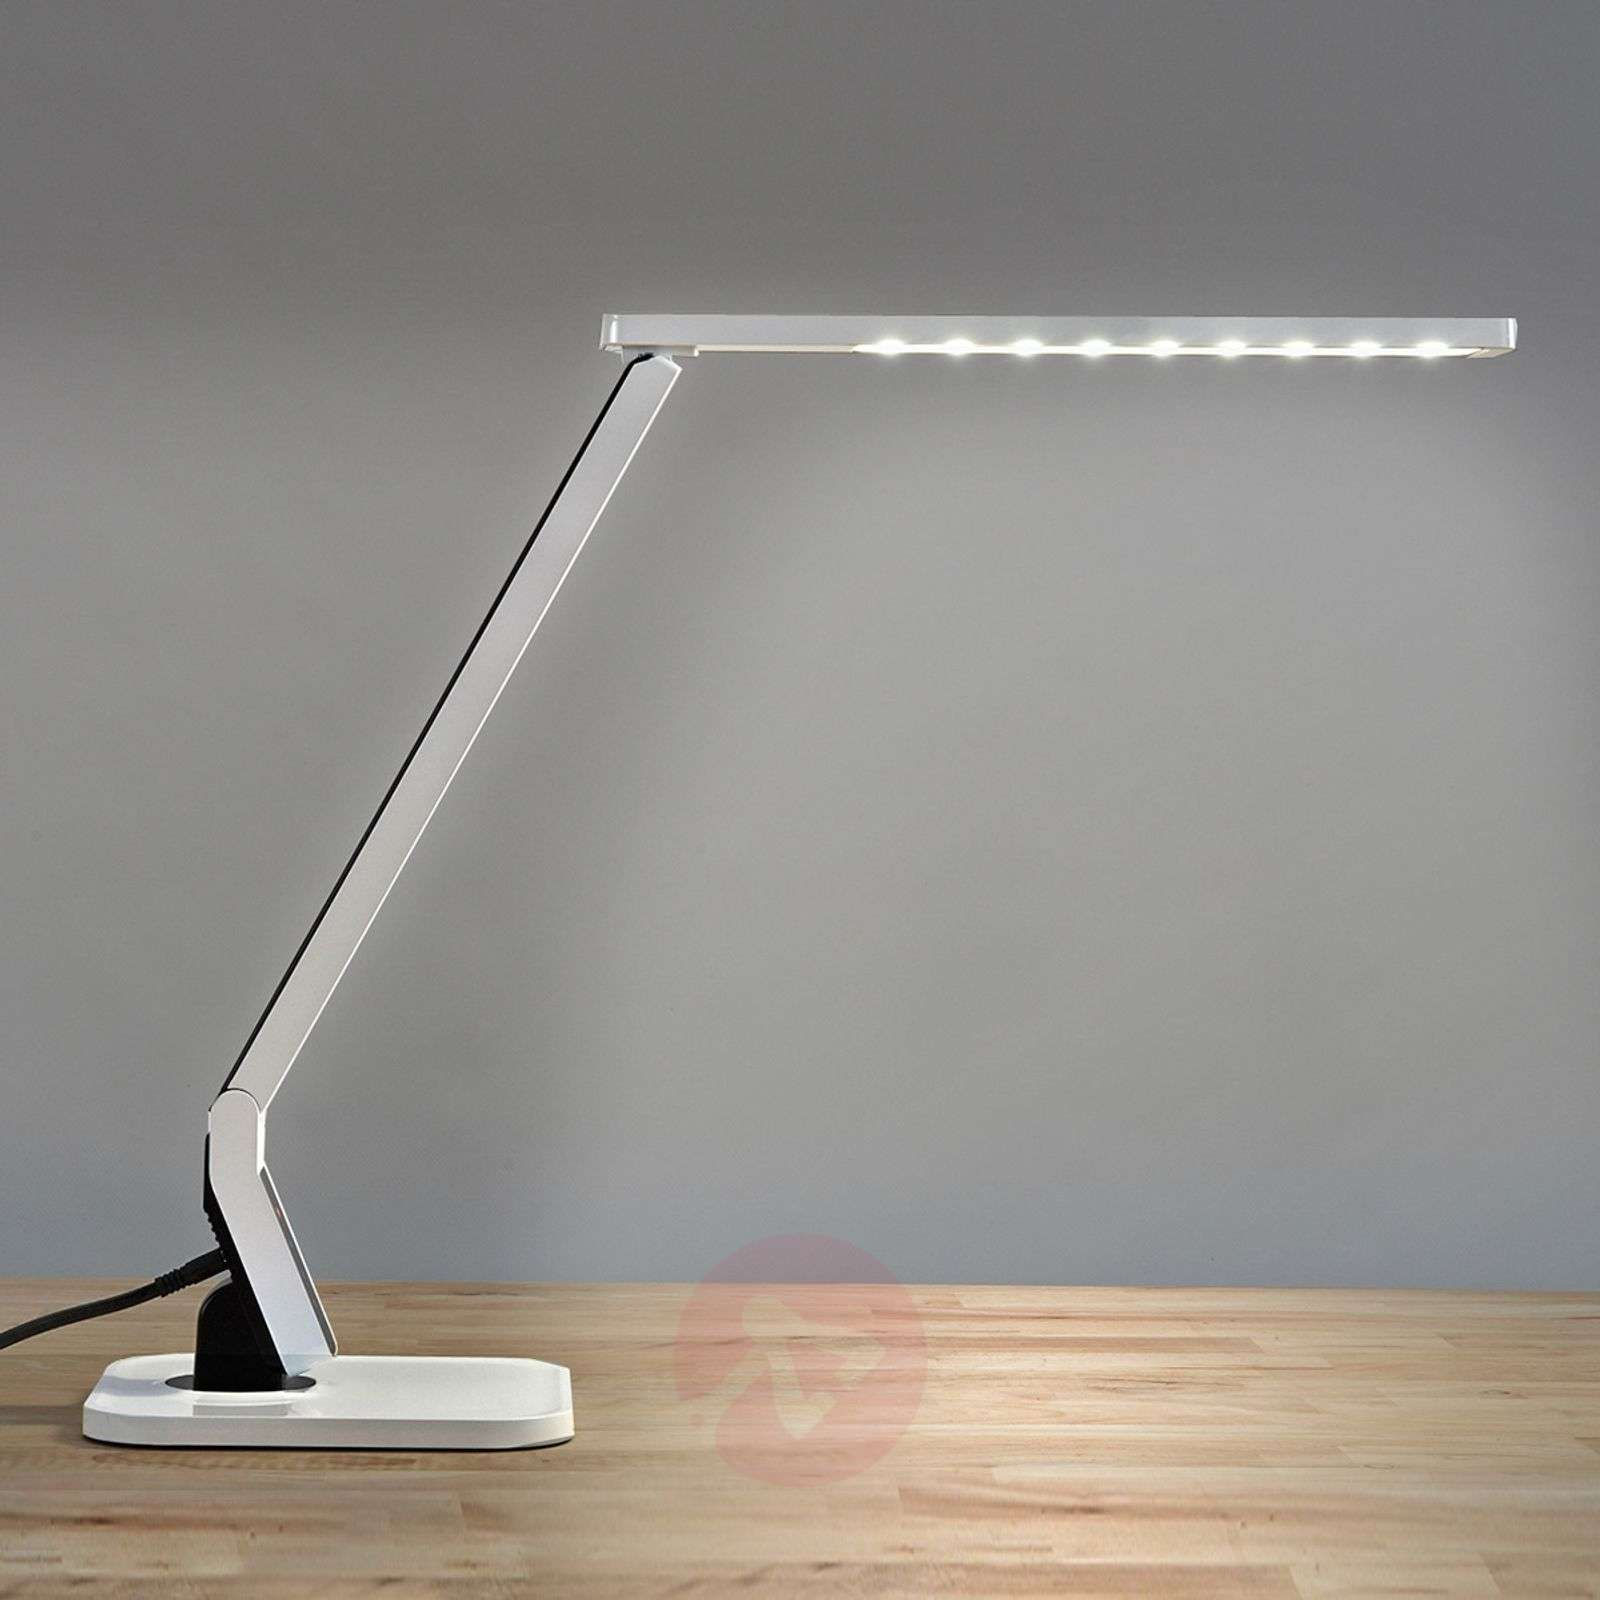 Top modern LED desk table lamp Eleni, white-9950190-02